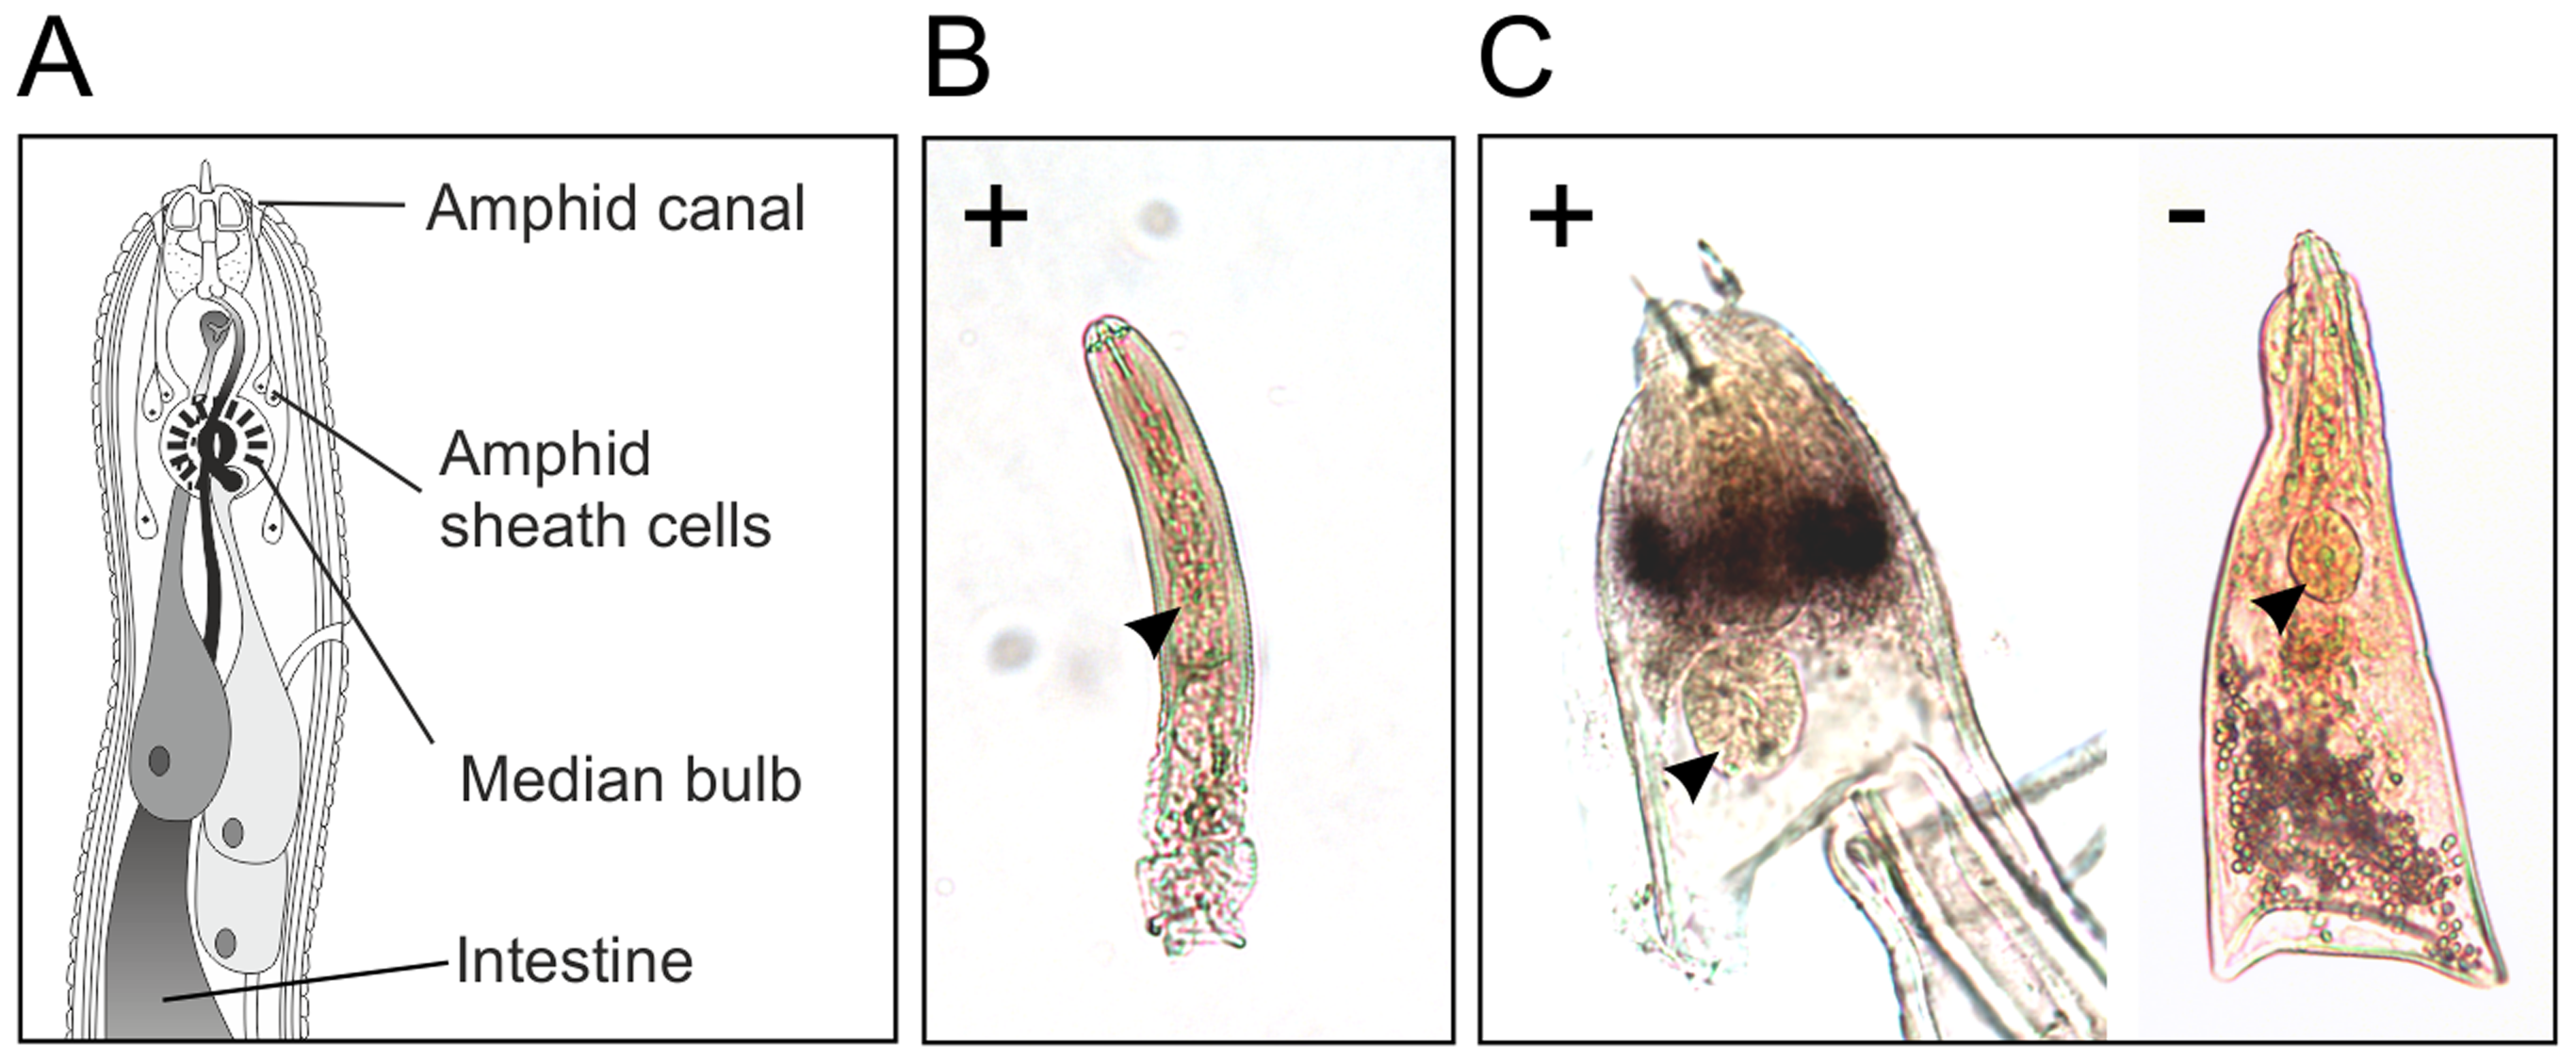 HYP effectors are expressed in the amphid sheath cells of parasitic females.